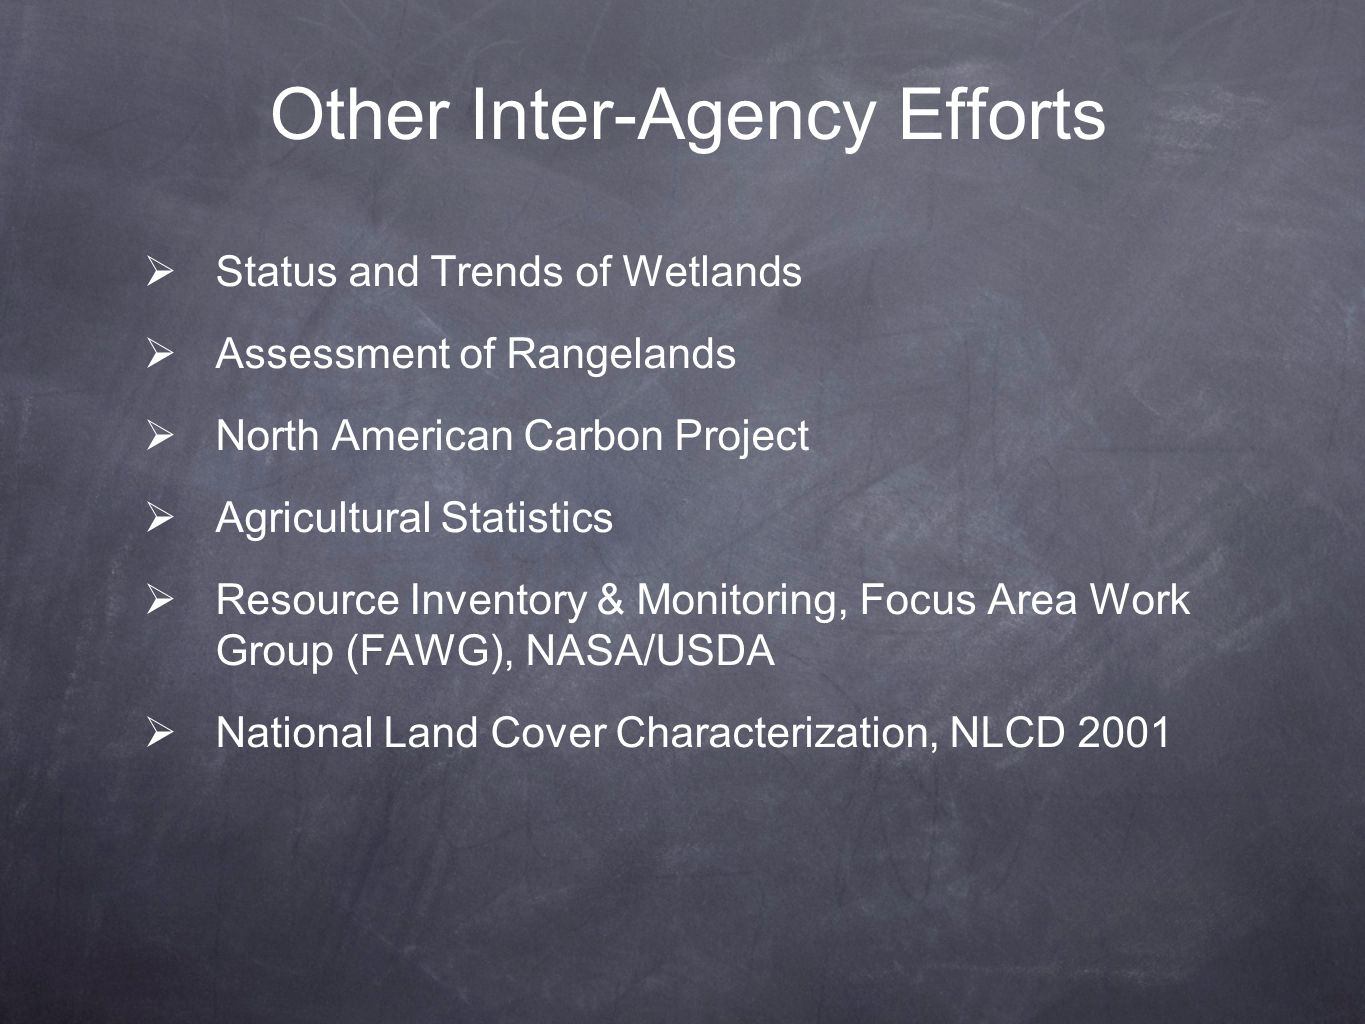 Other Inter-Agency Efforts